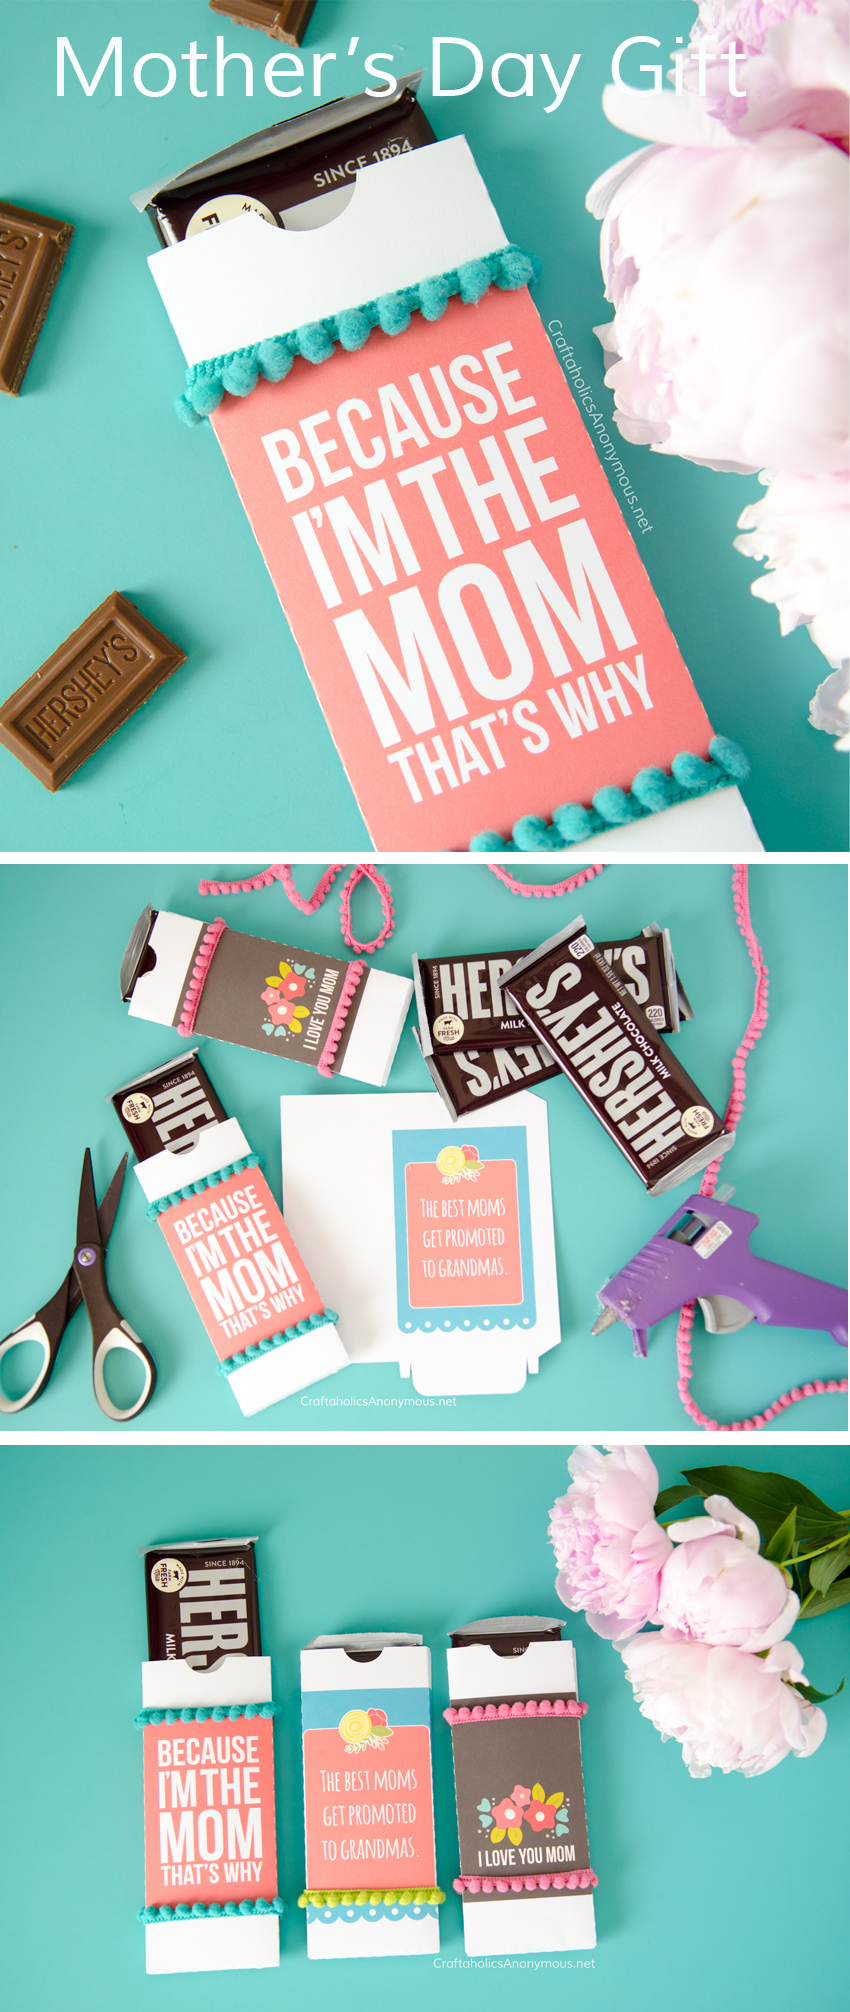 mothers-day-gift-collage